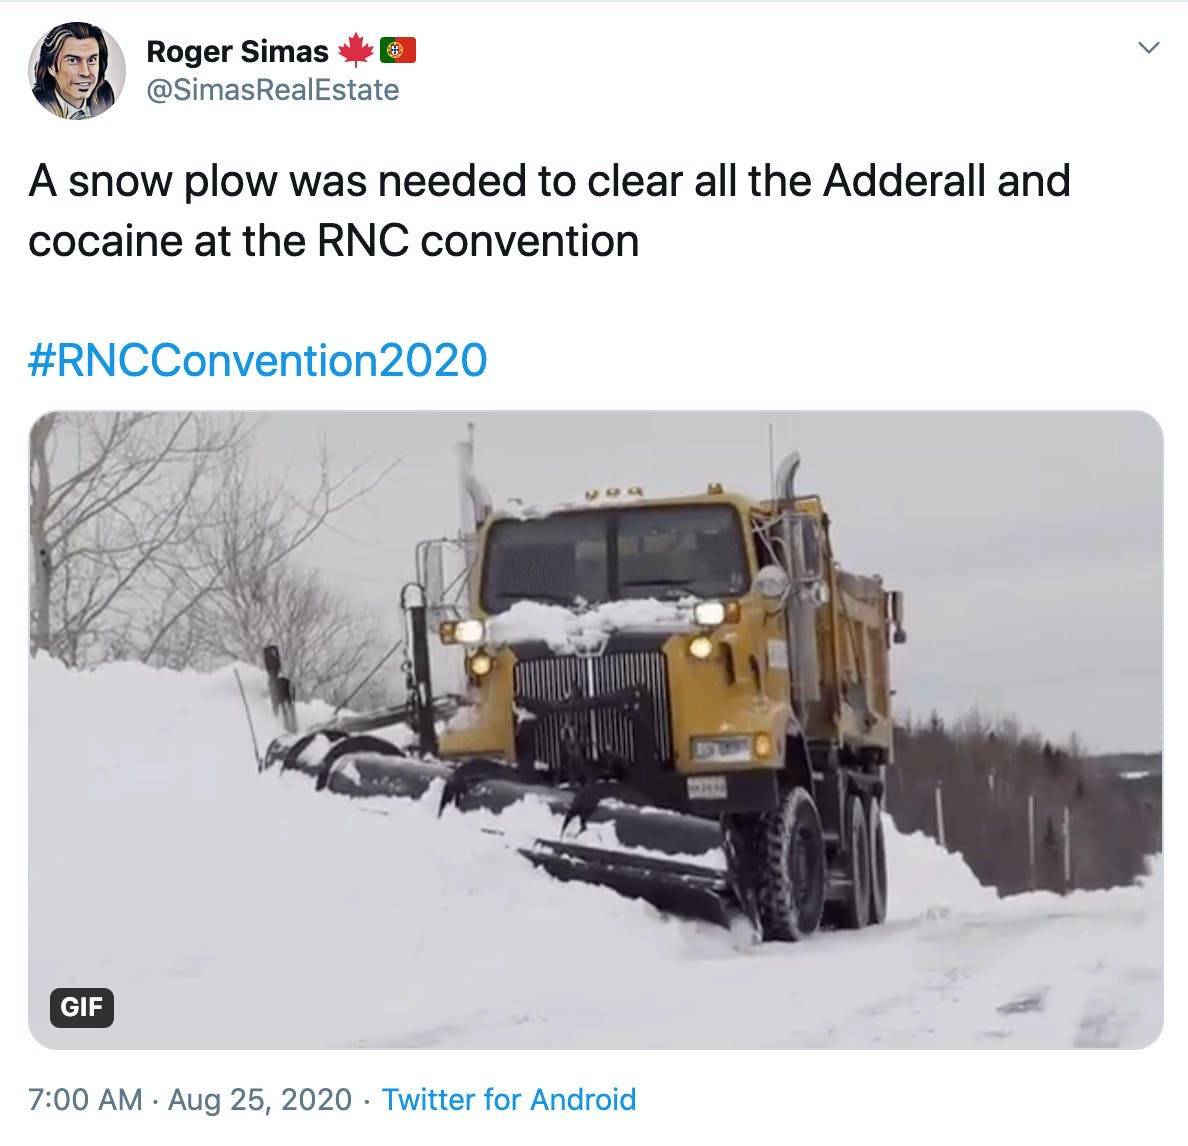 """A snow plow was needed to clear all the Adderall and cocaine at the RNC convention  #RNCConvention2020"" image of a snowplow clearing the streets"